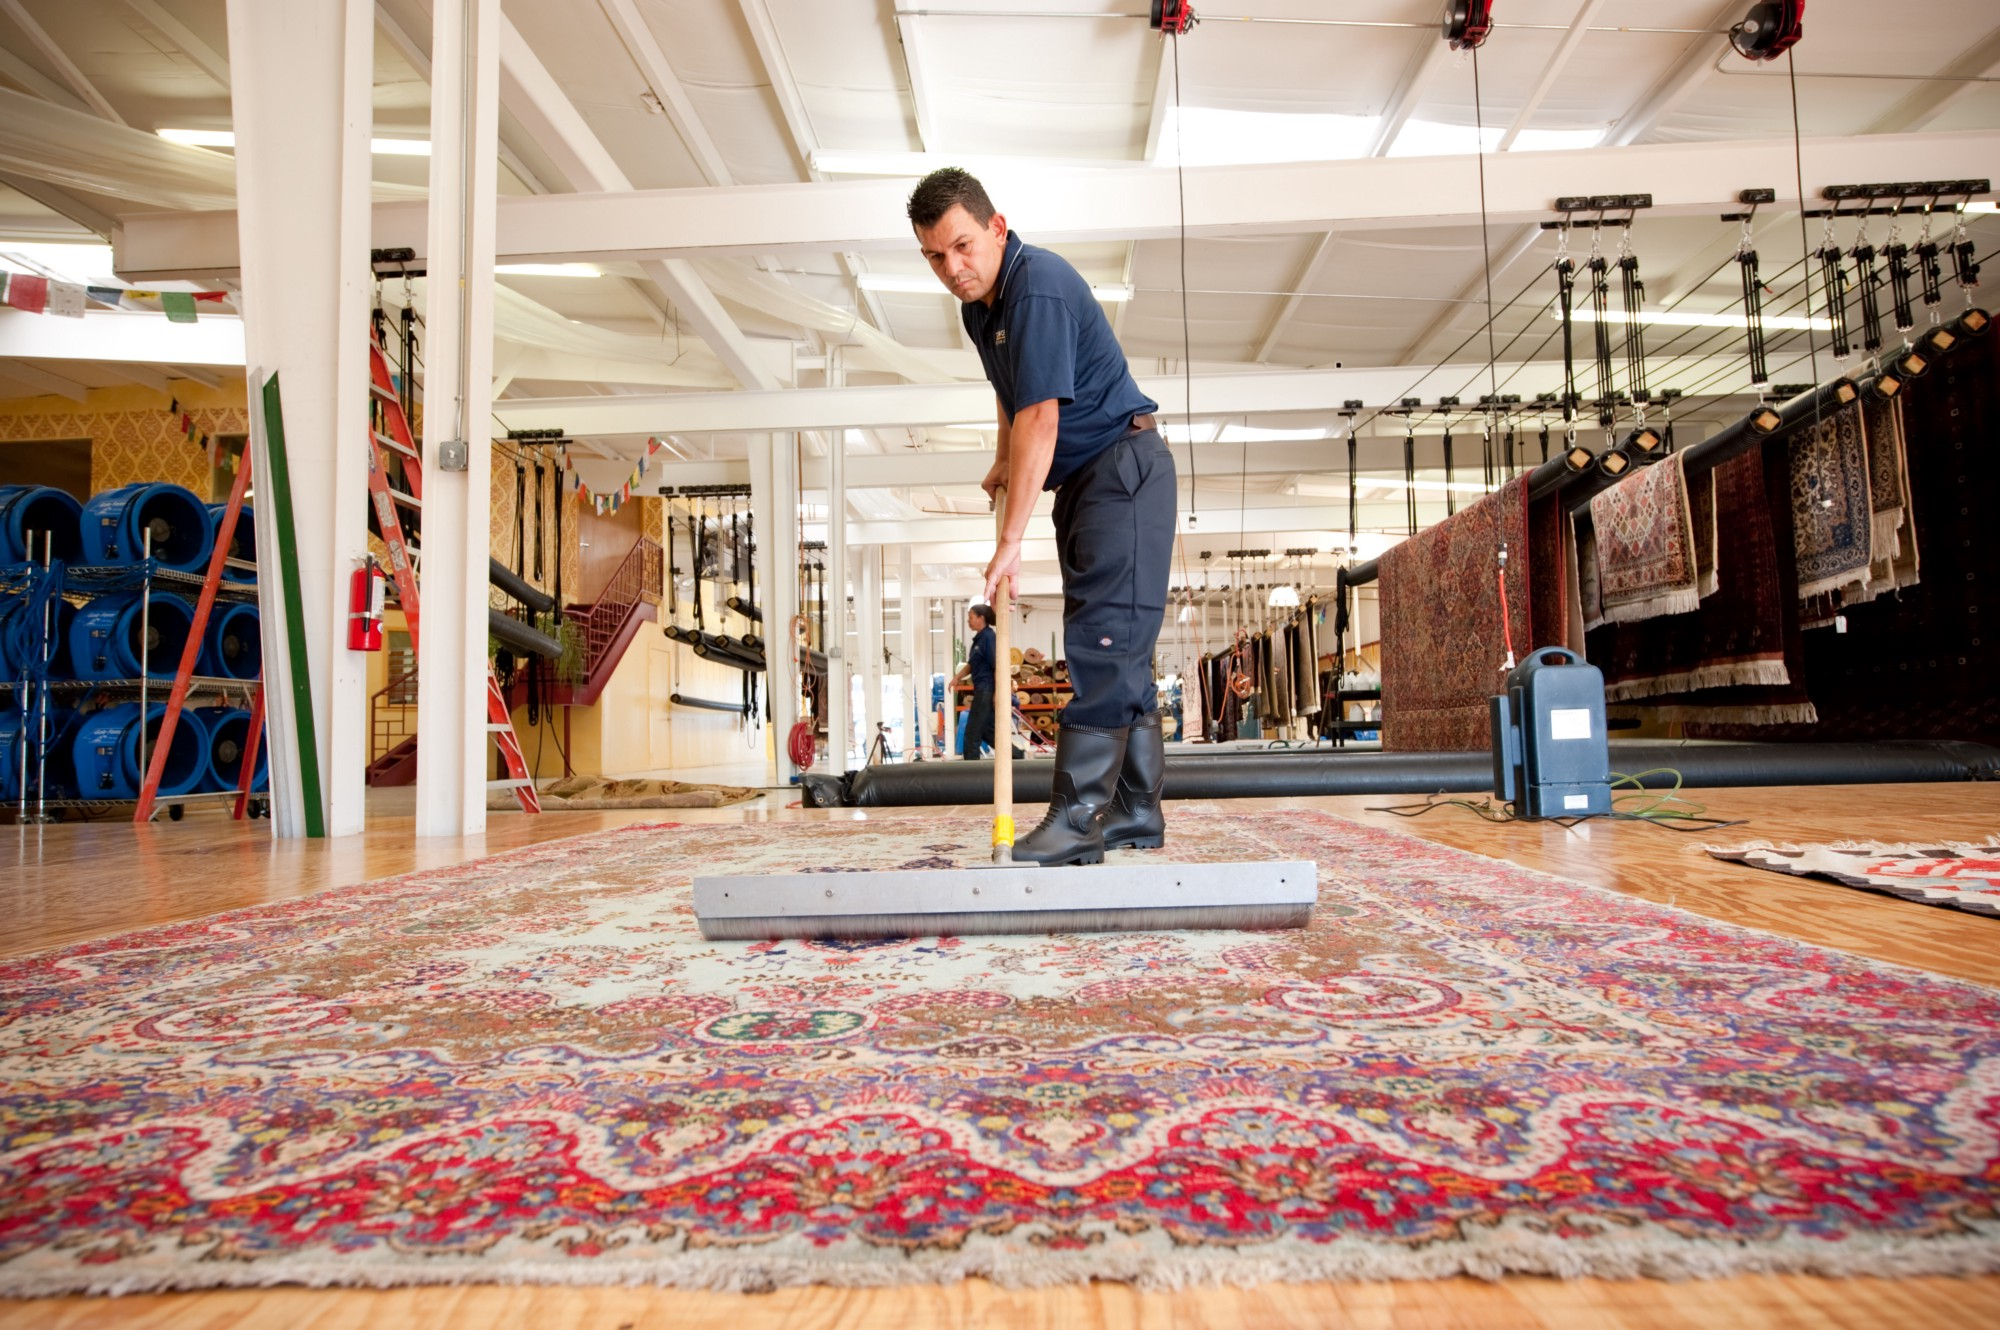 How To Clean Traditional And Modern Rugs Effectively?